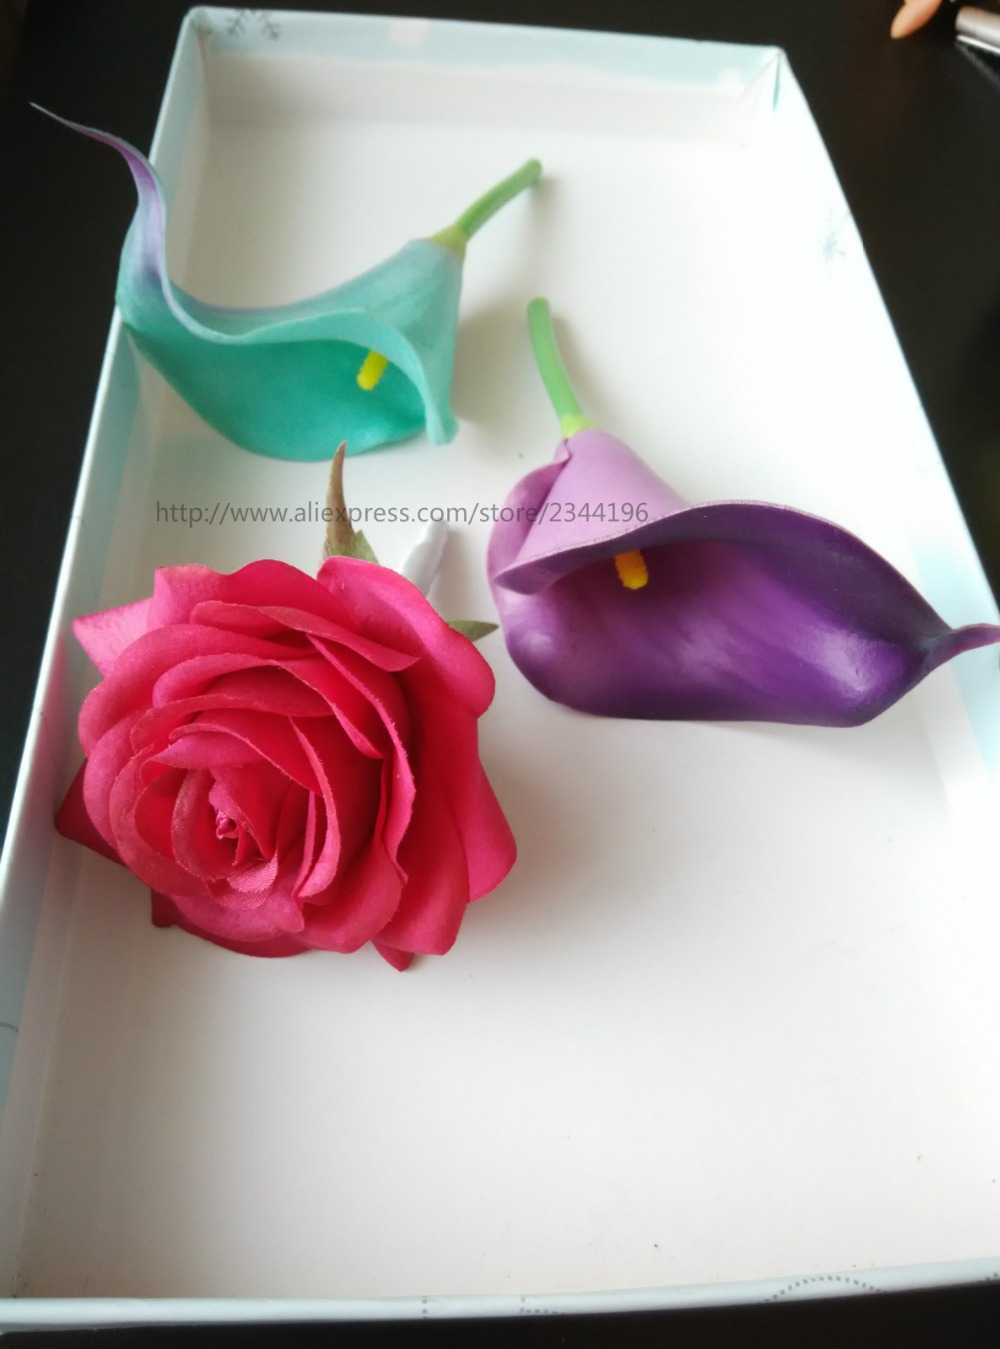 Shocking pink rose boutonnieres wedding women mens pocket flowers shocking pink rose boutonnieres wedding women mens pocket flowers in artificial dried flowers from home garden on aliexpress alibaba group mightylinksfo